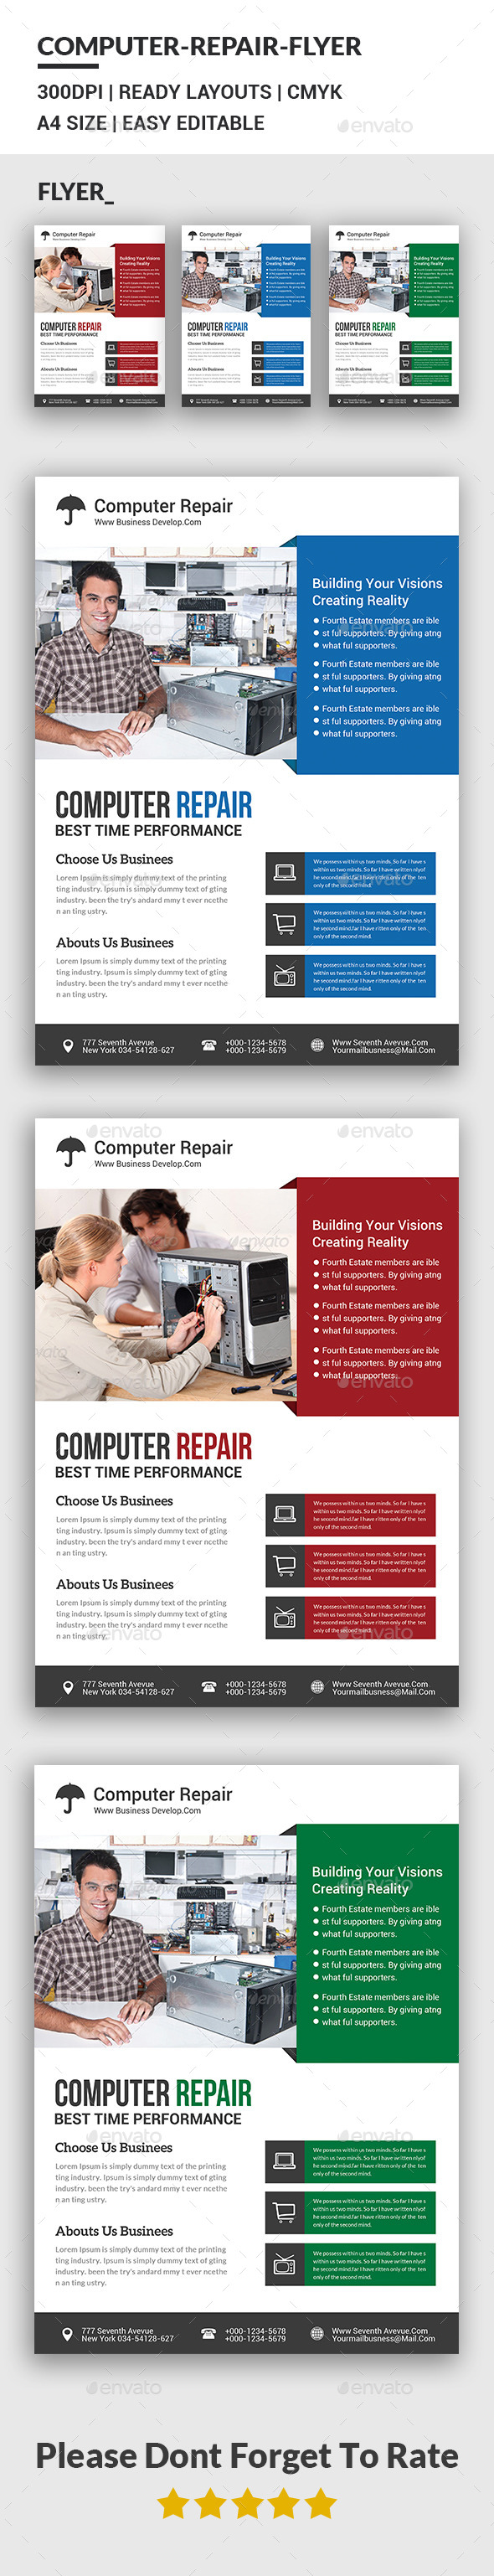 Computer Repair Flyer Template - Corporate Flyers